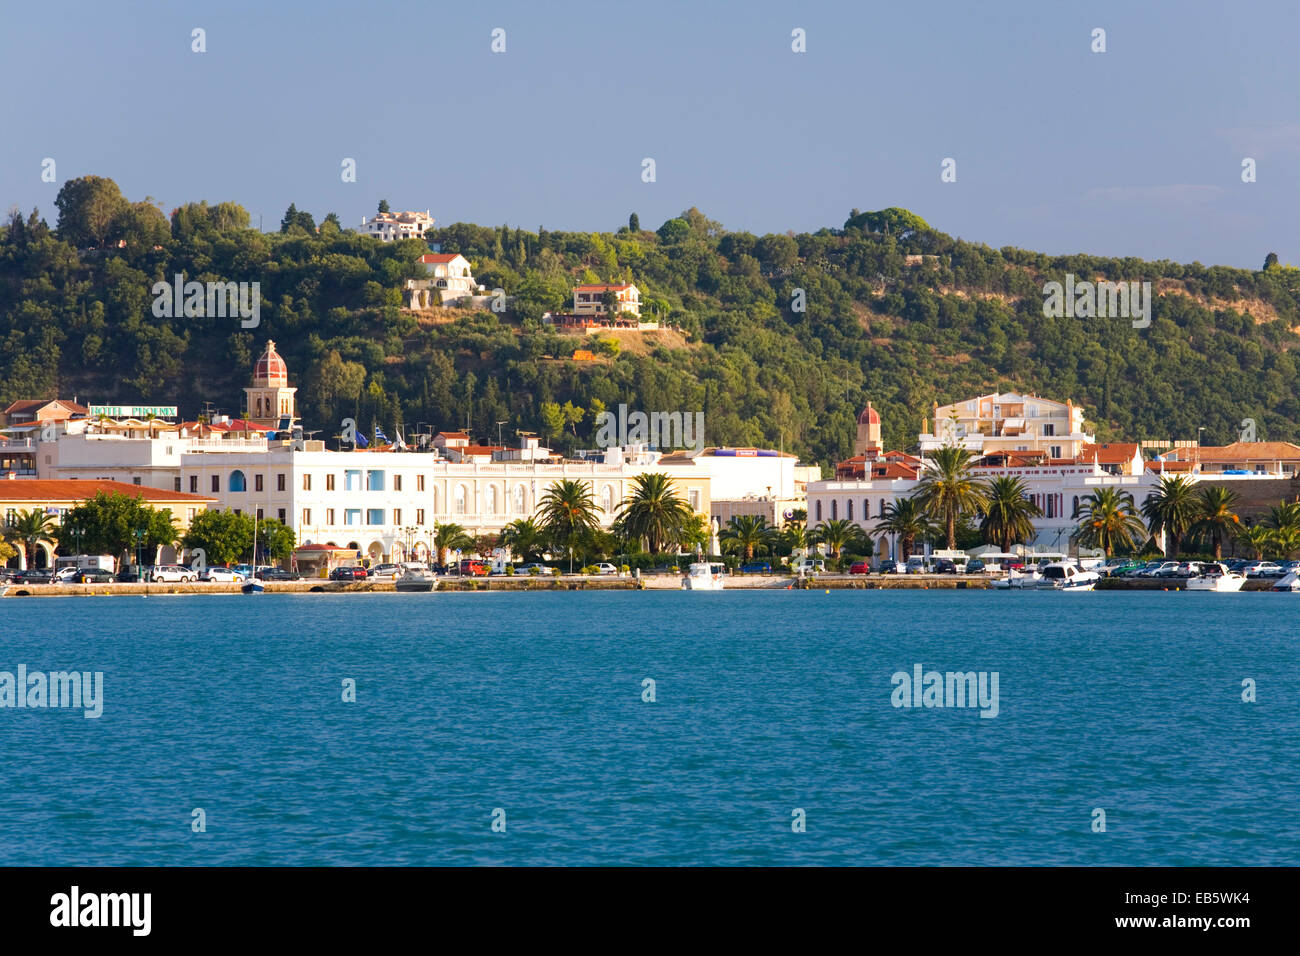 Zakynthos Town, Zakynthos, Ionian Islands, Greece. View across harbour to the waterfront. Stock Photo